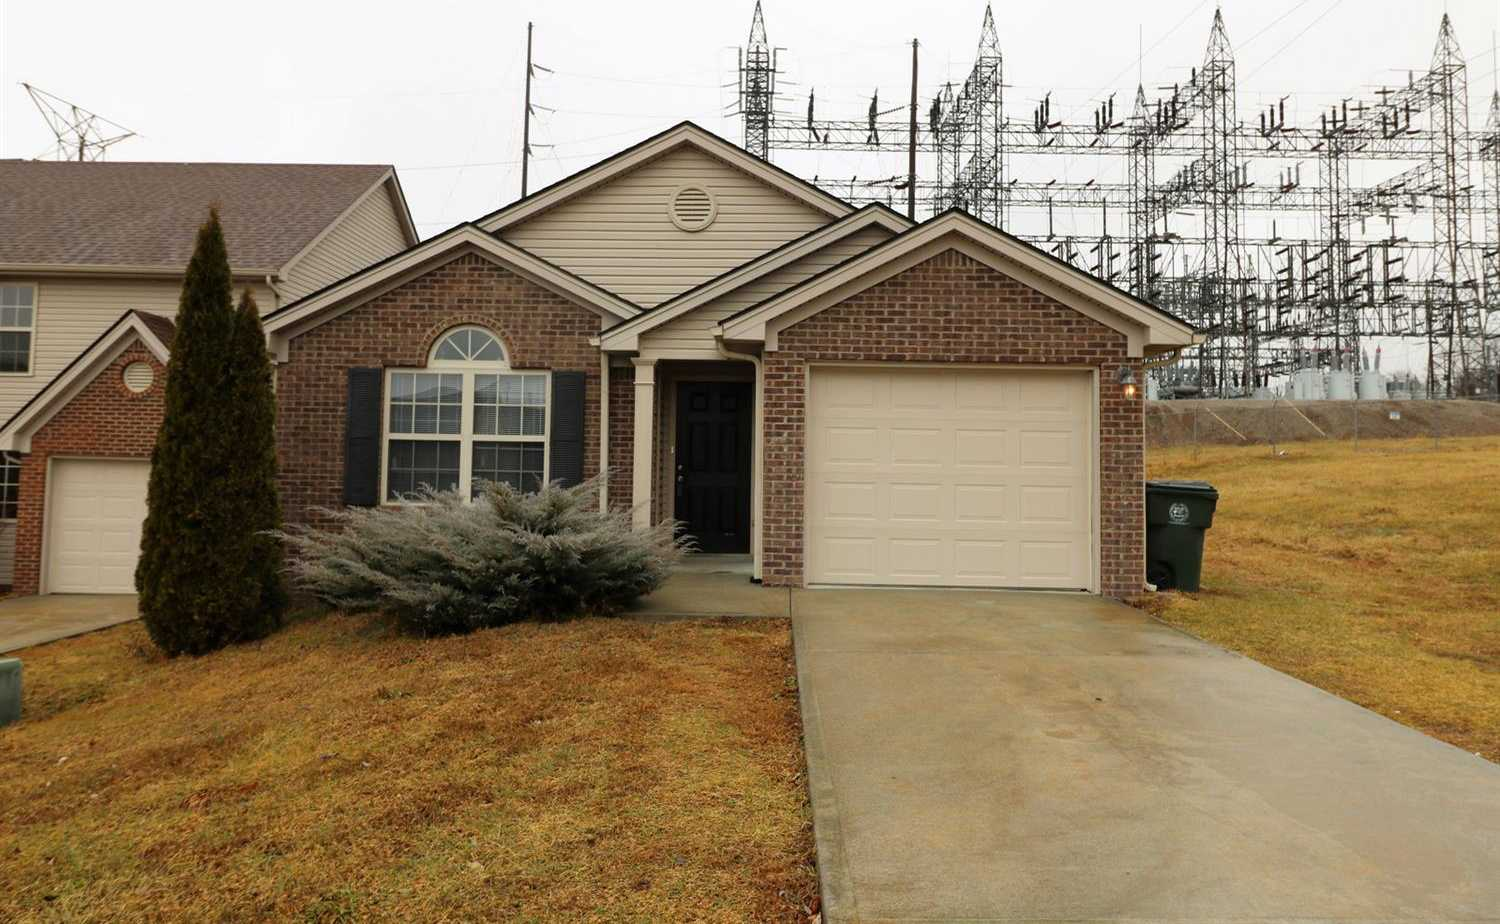 $173,500 - 2Br/2Ba -  for Sale in Willow Bend, Lexington